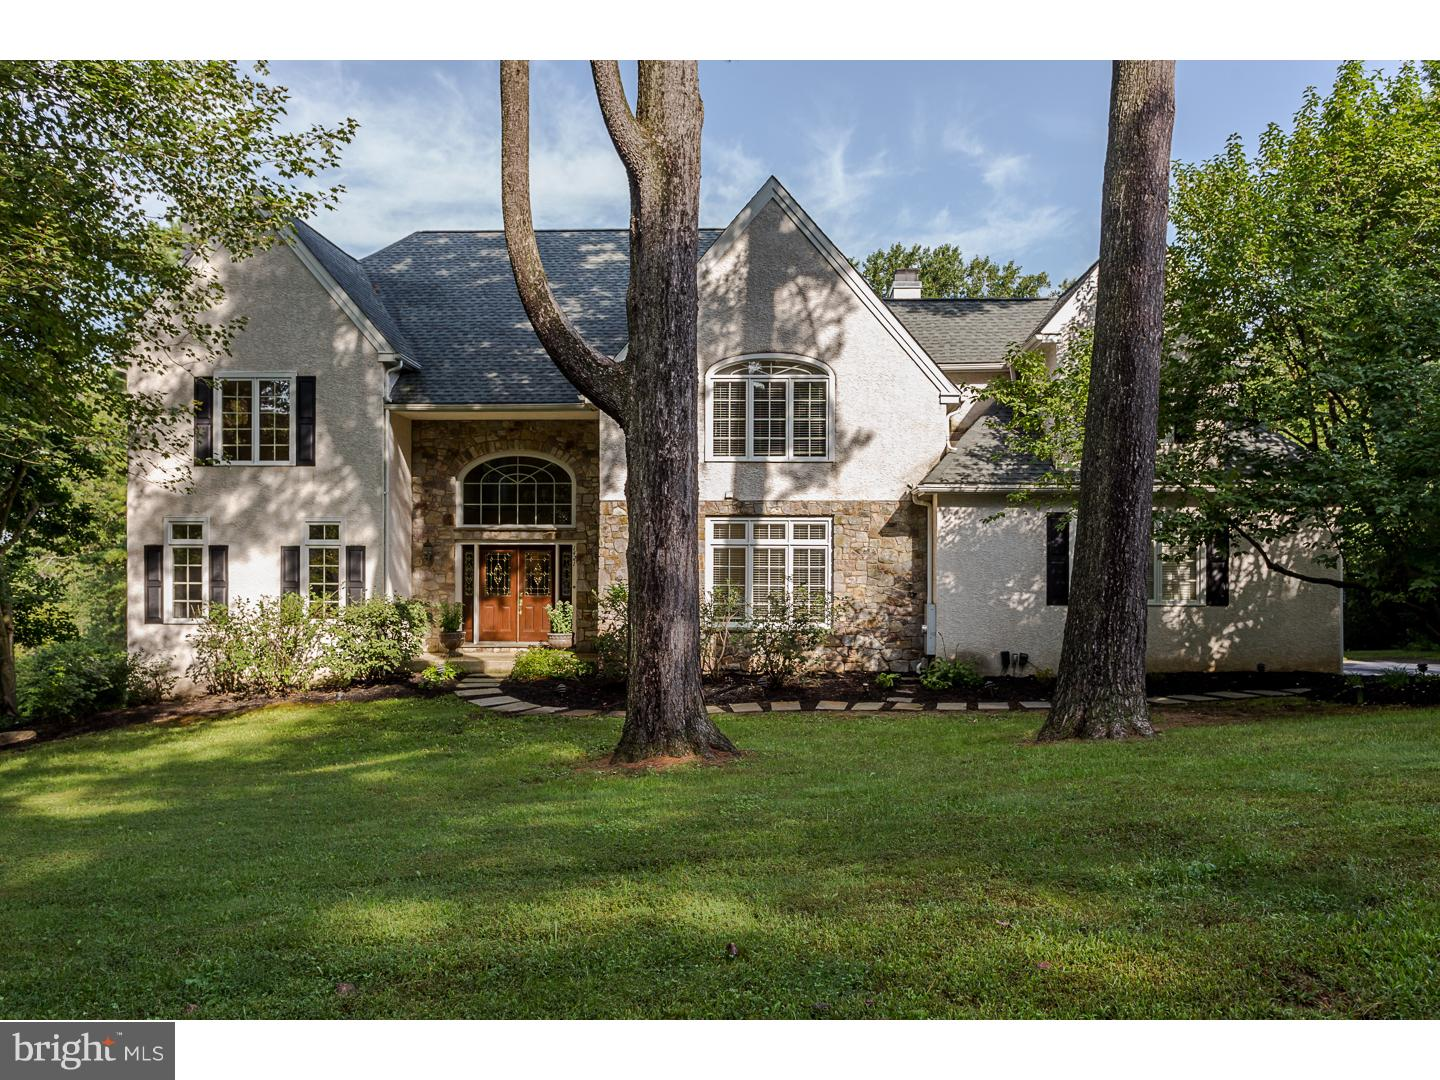 1421 ARDLEIGH CIRCLE, WEST CHESTER, PA 19380